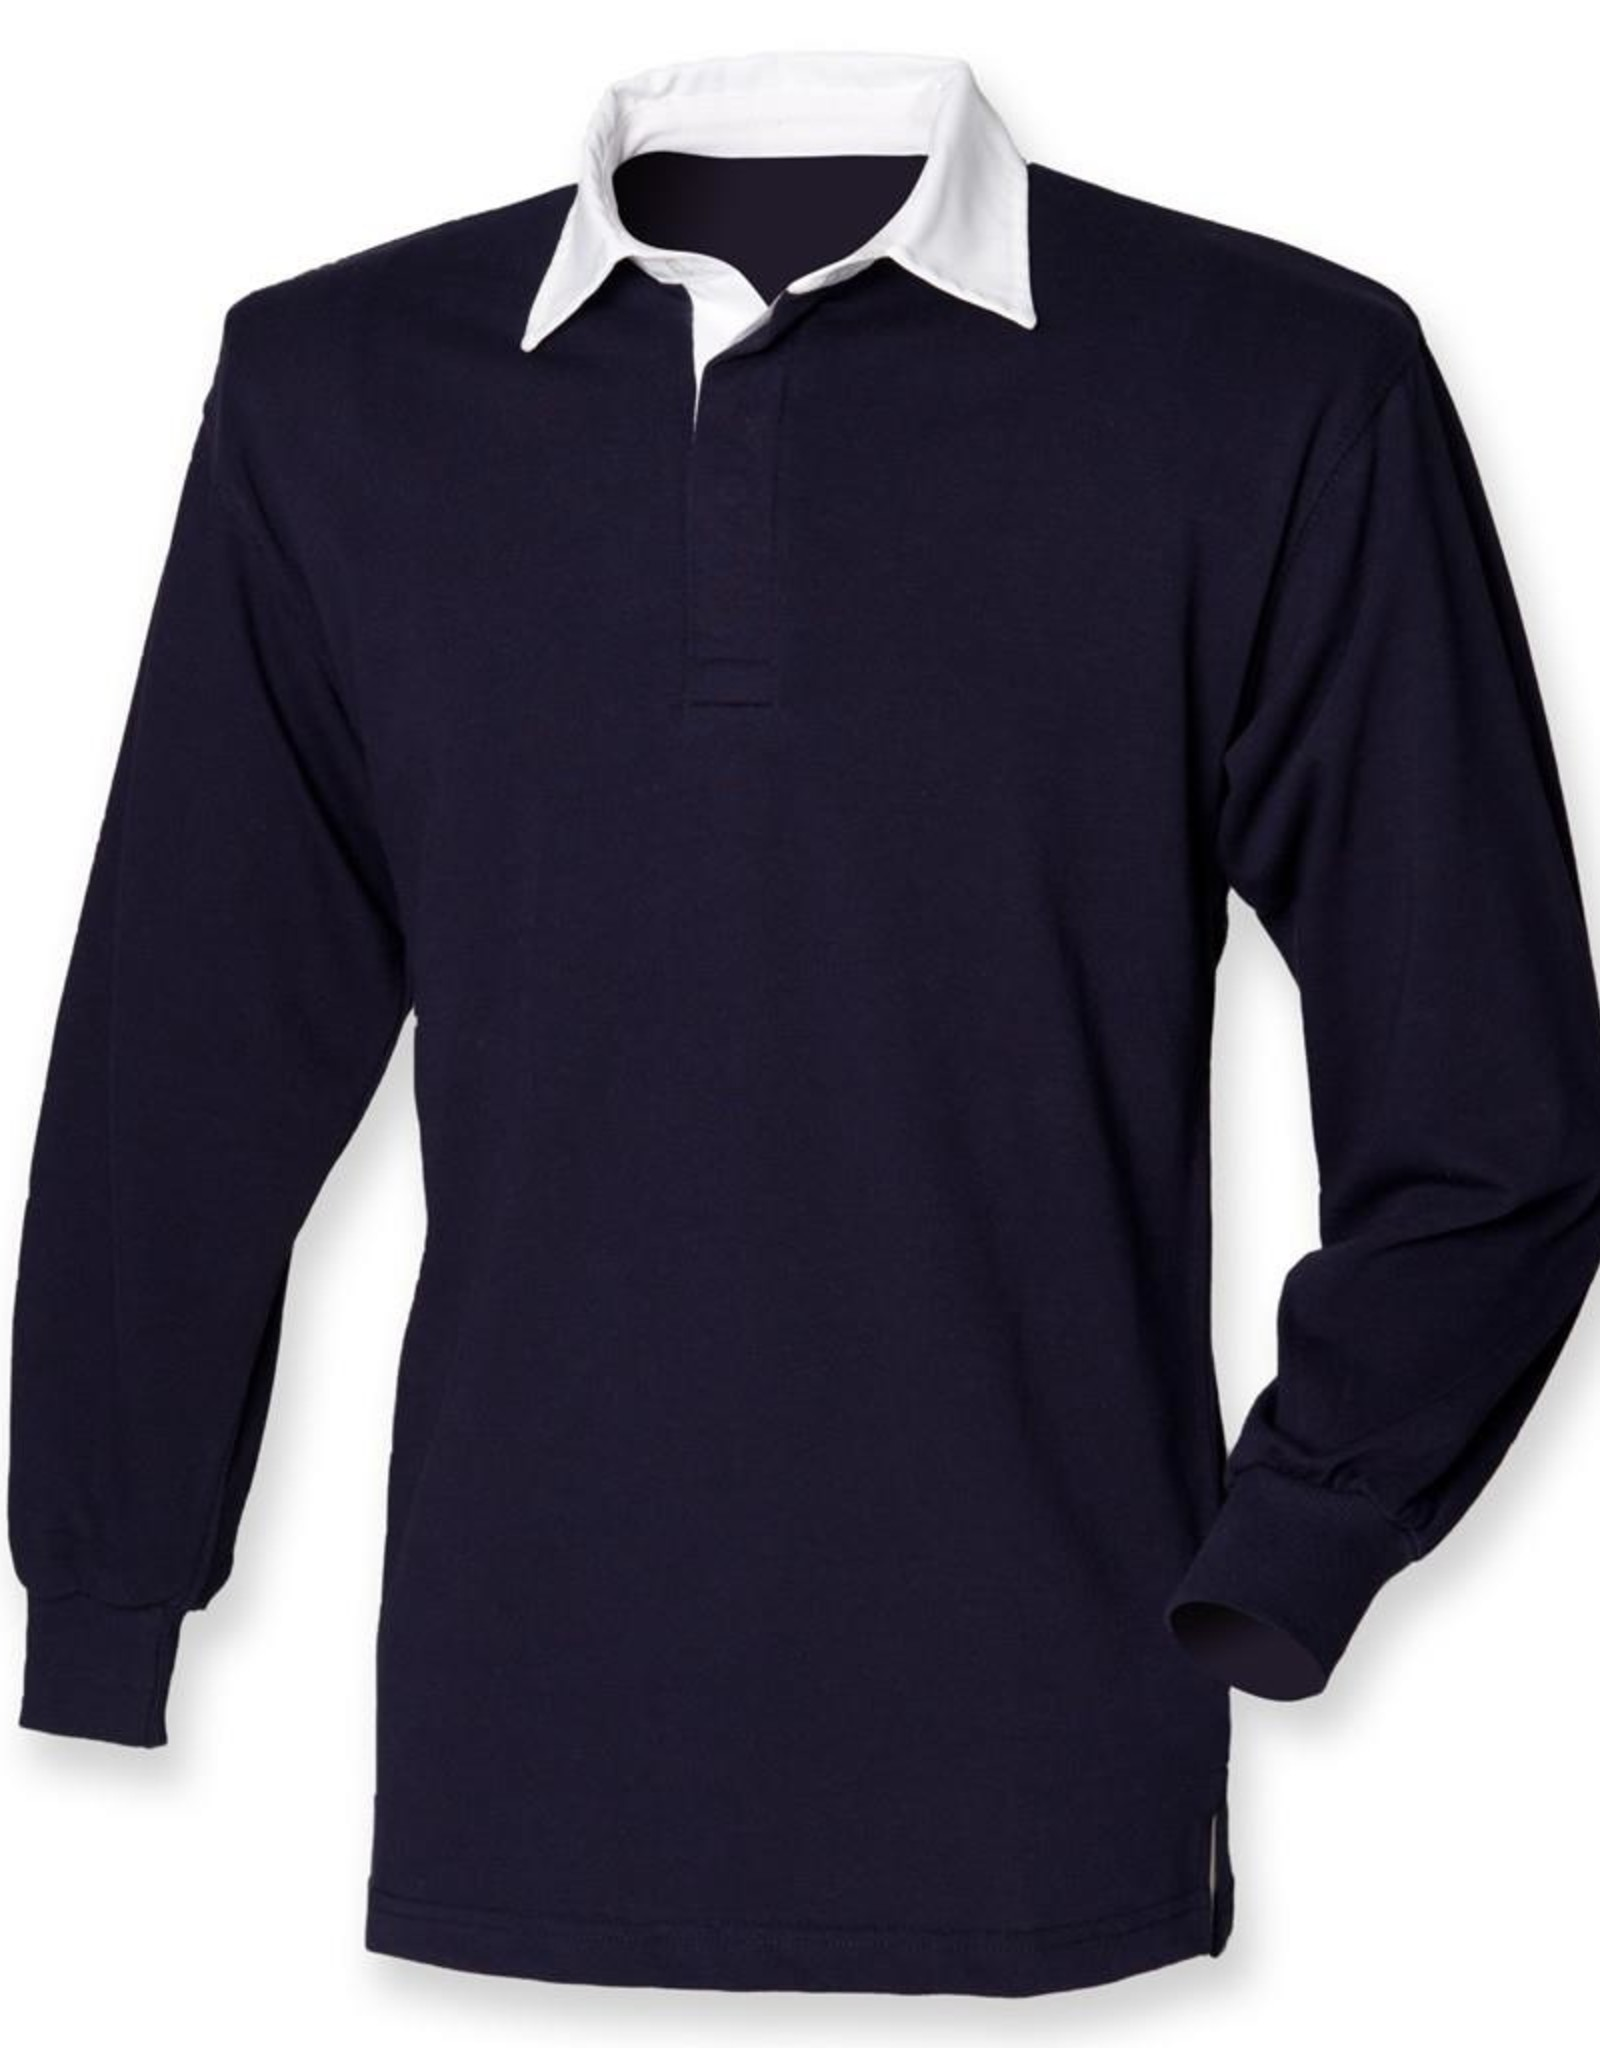 Front Row Collection RUGBY / POLOSWEATER heren - navy / wit